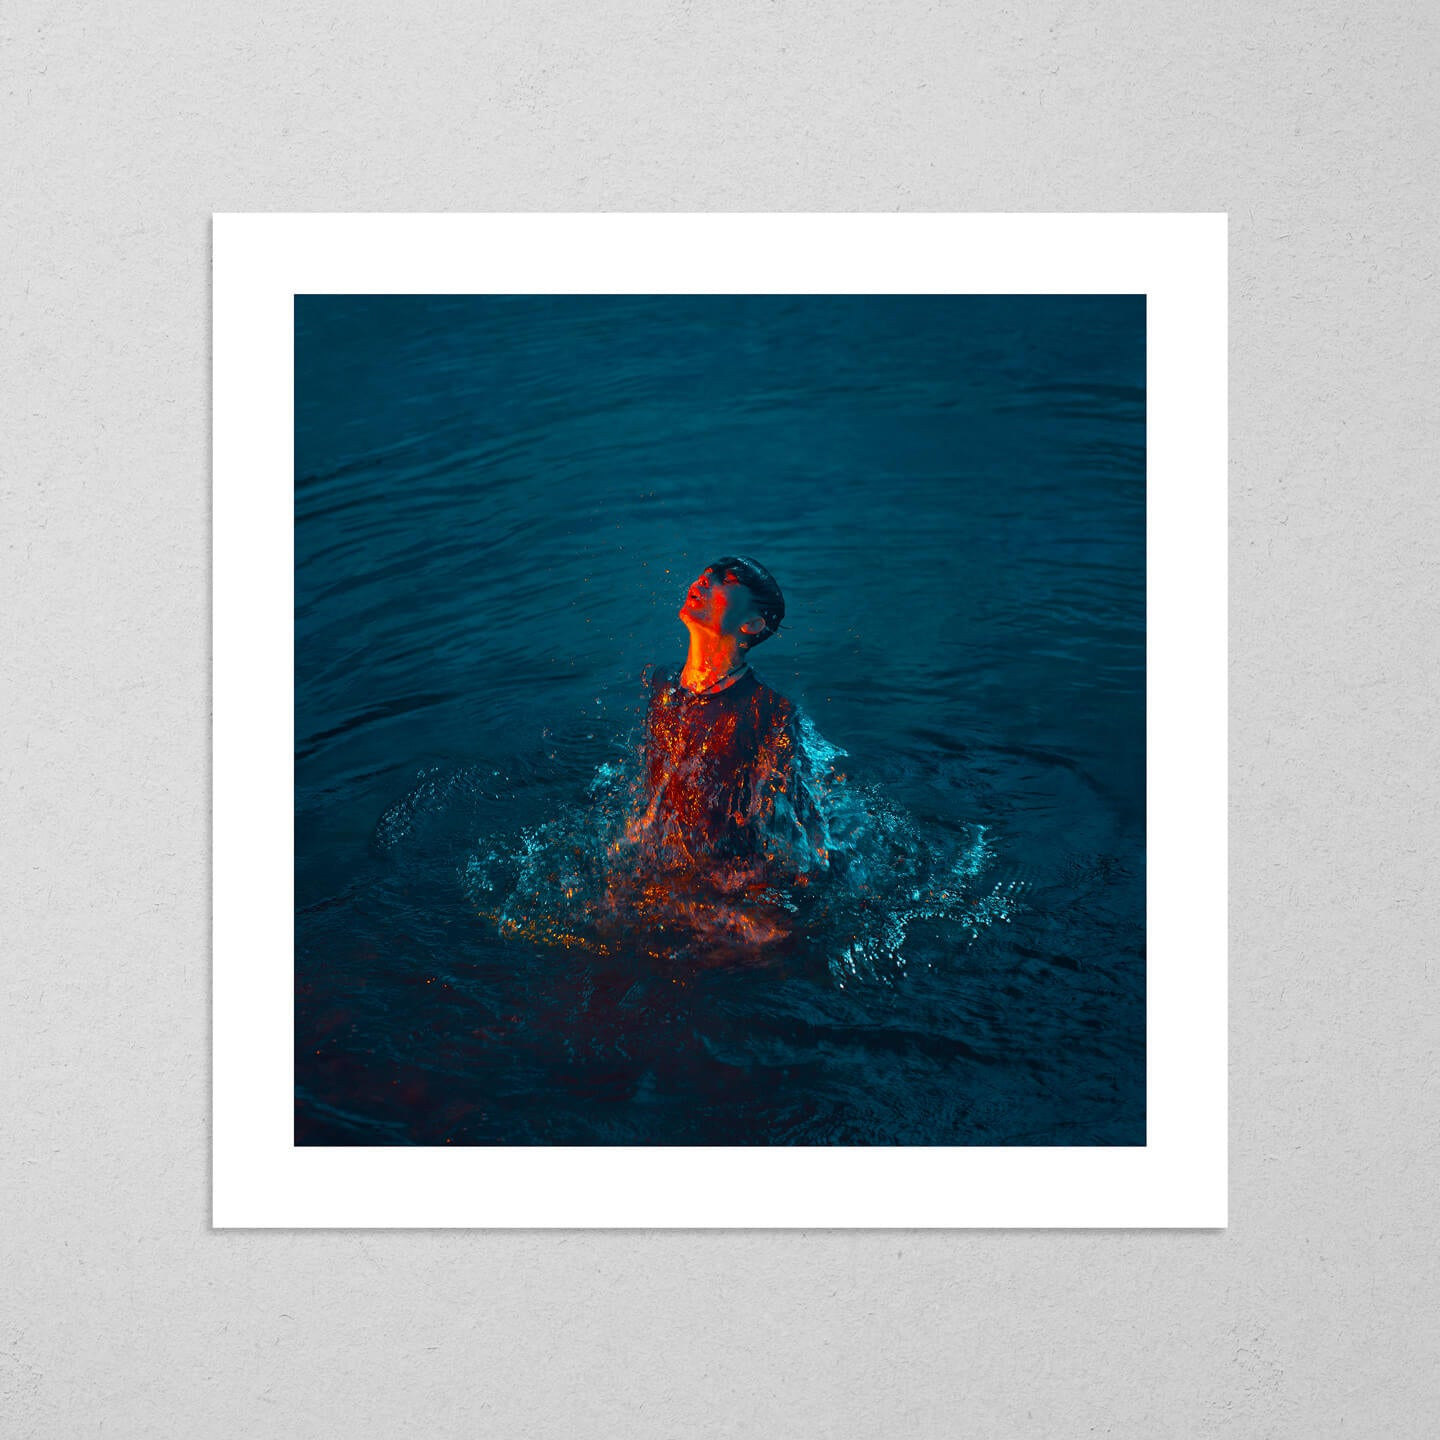 Seven Seas, moody and cinematic photography fine art giclée print on Hahnemühle Pearl paper by Adrian Wojtas